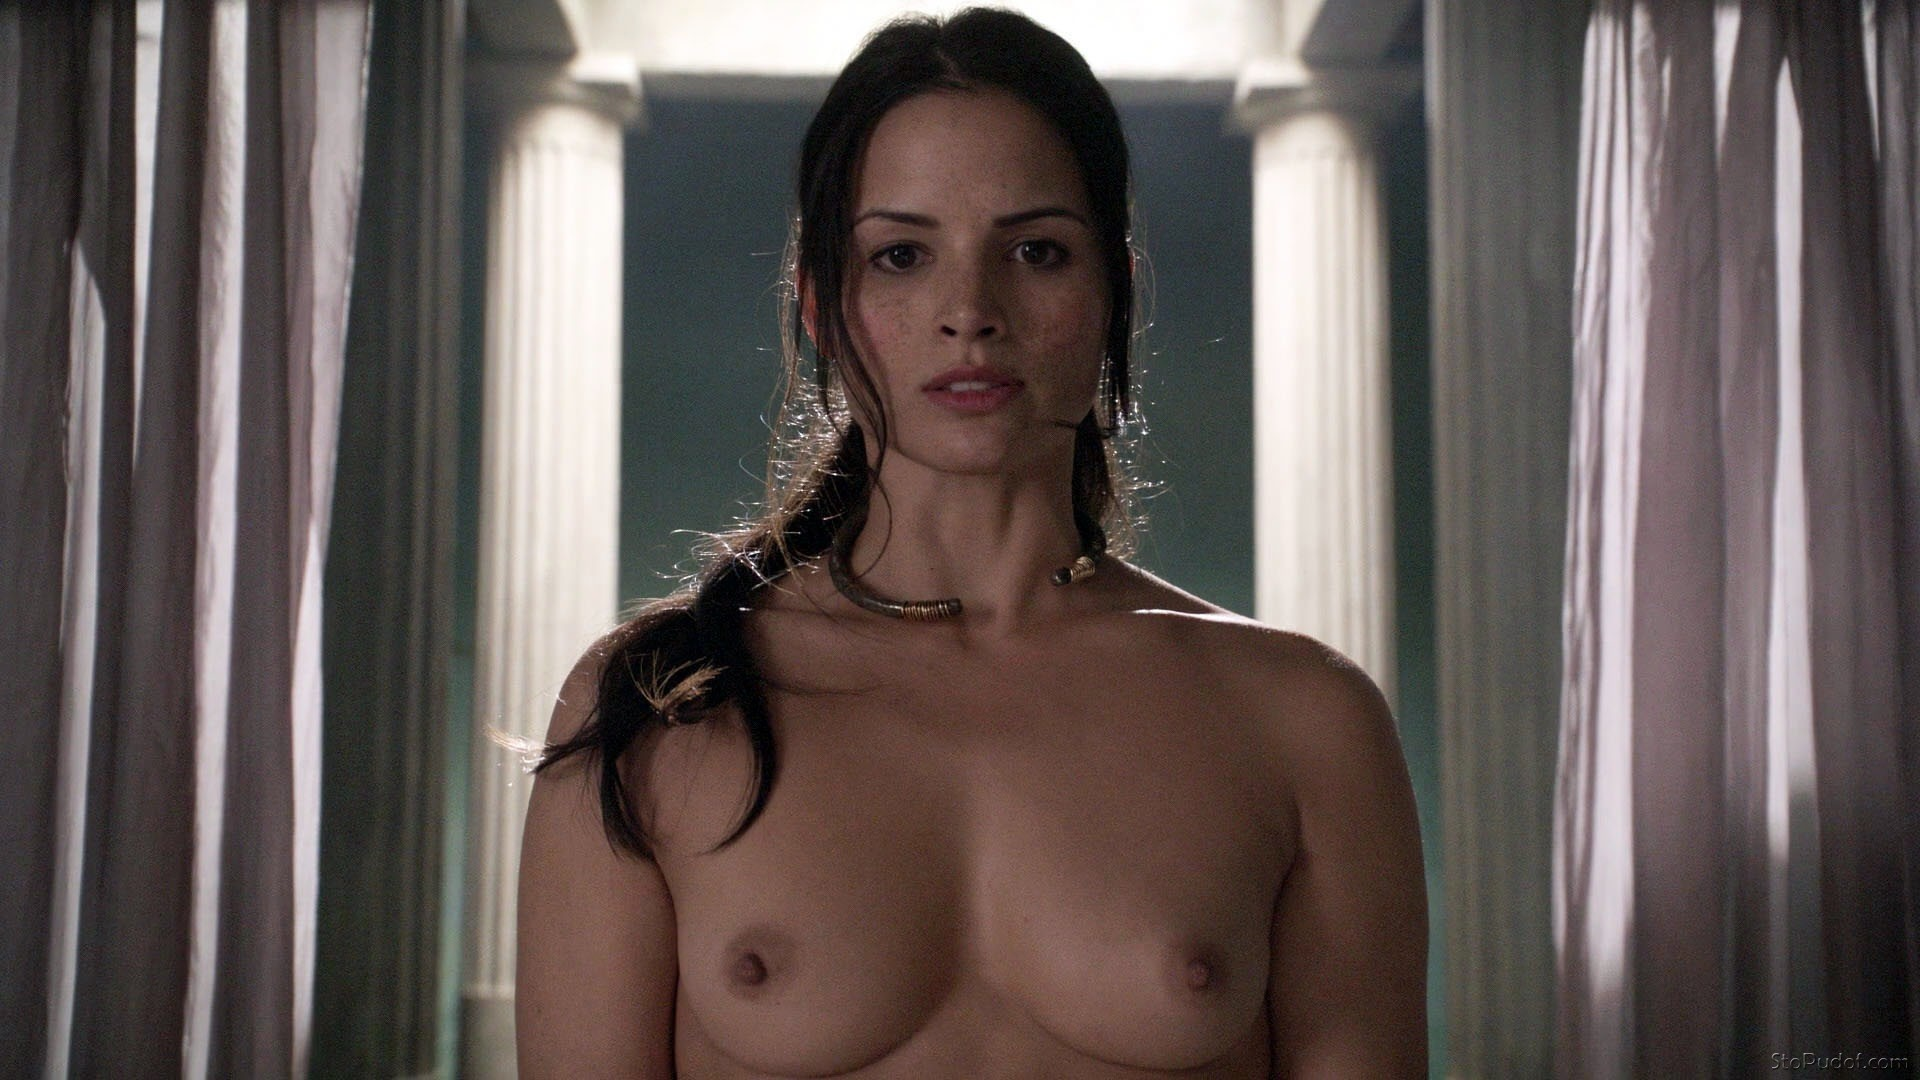 more nude images of Katrina Law - UkPhotoSafari